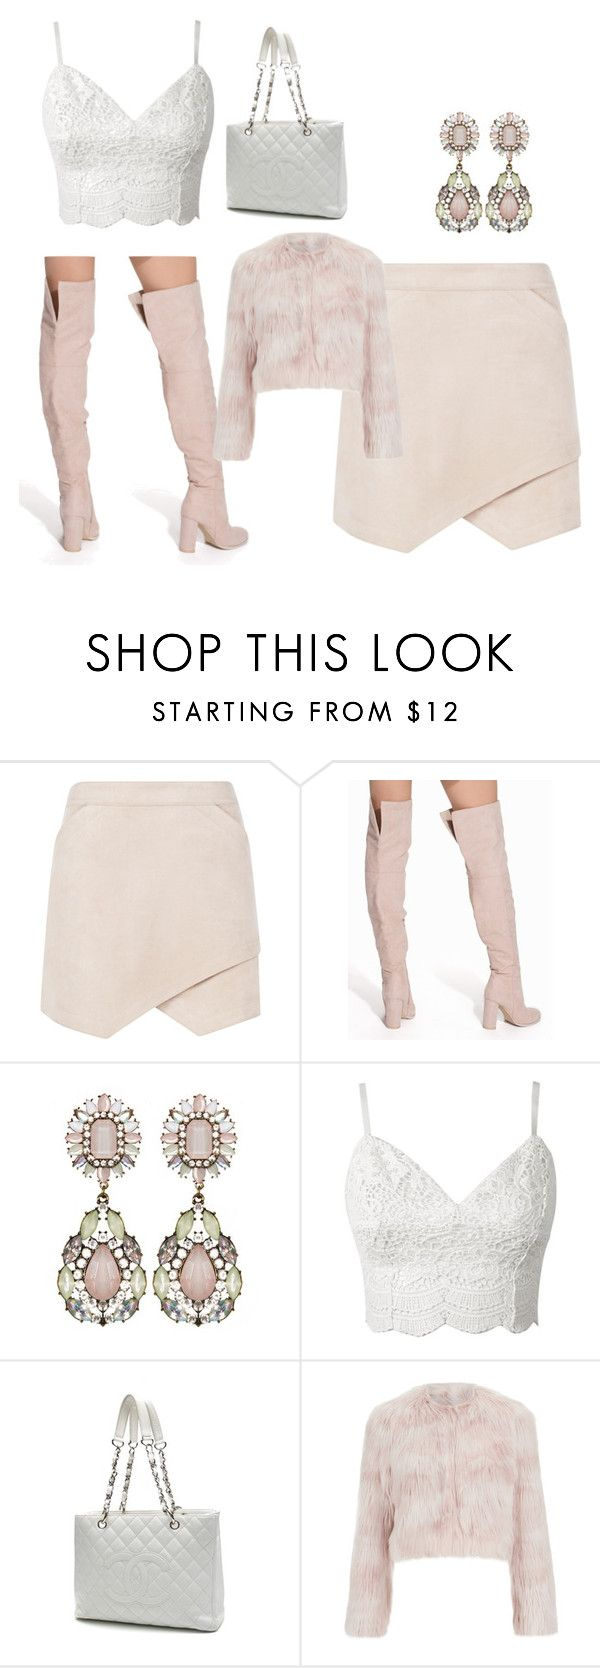 """Untitled #100"" by mariapangal ❤ liked on Polyvore featuring BCBGMAXAZRIA, Nly Shoes, Chanel and RED Valentino"